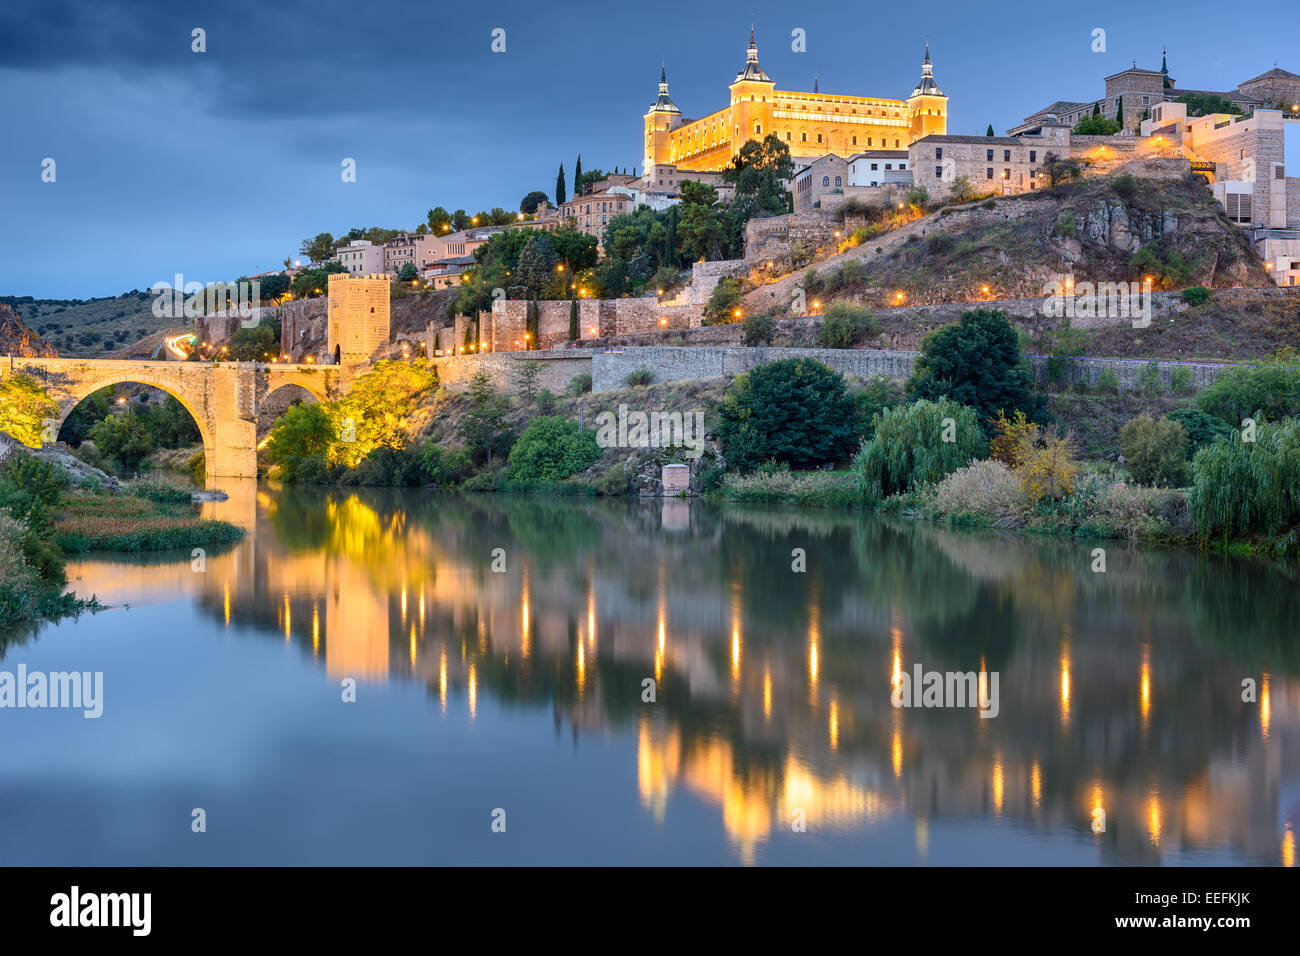 Toledo, Spain old town skyline at the Alcazar on the River. - Stock Image